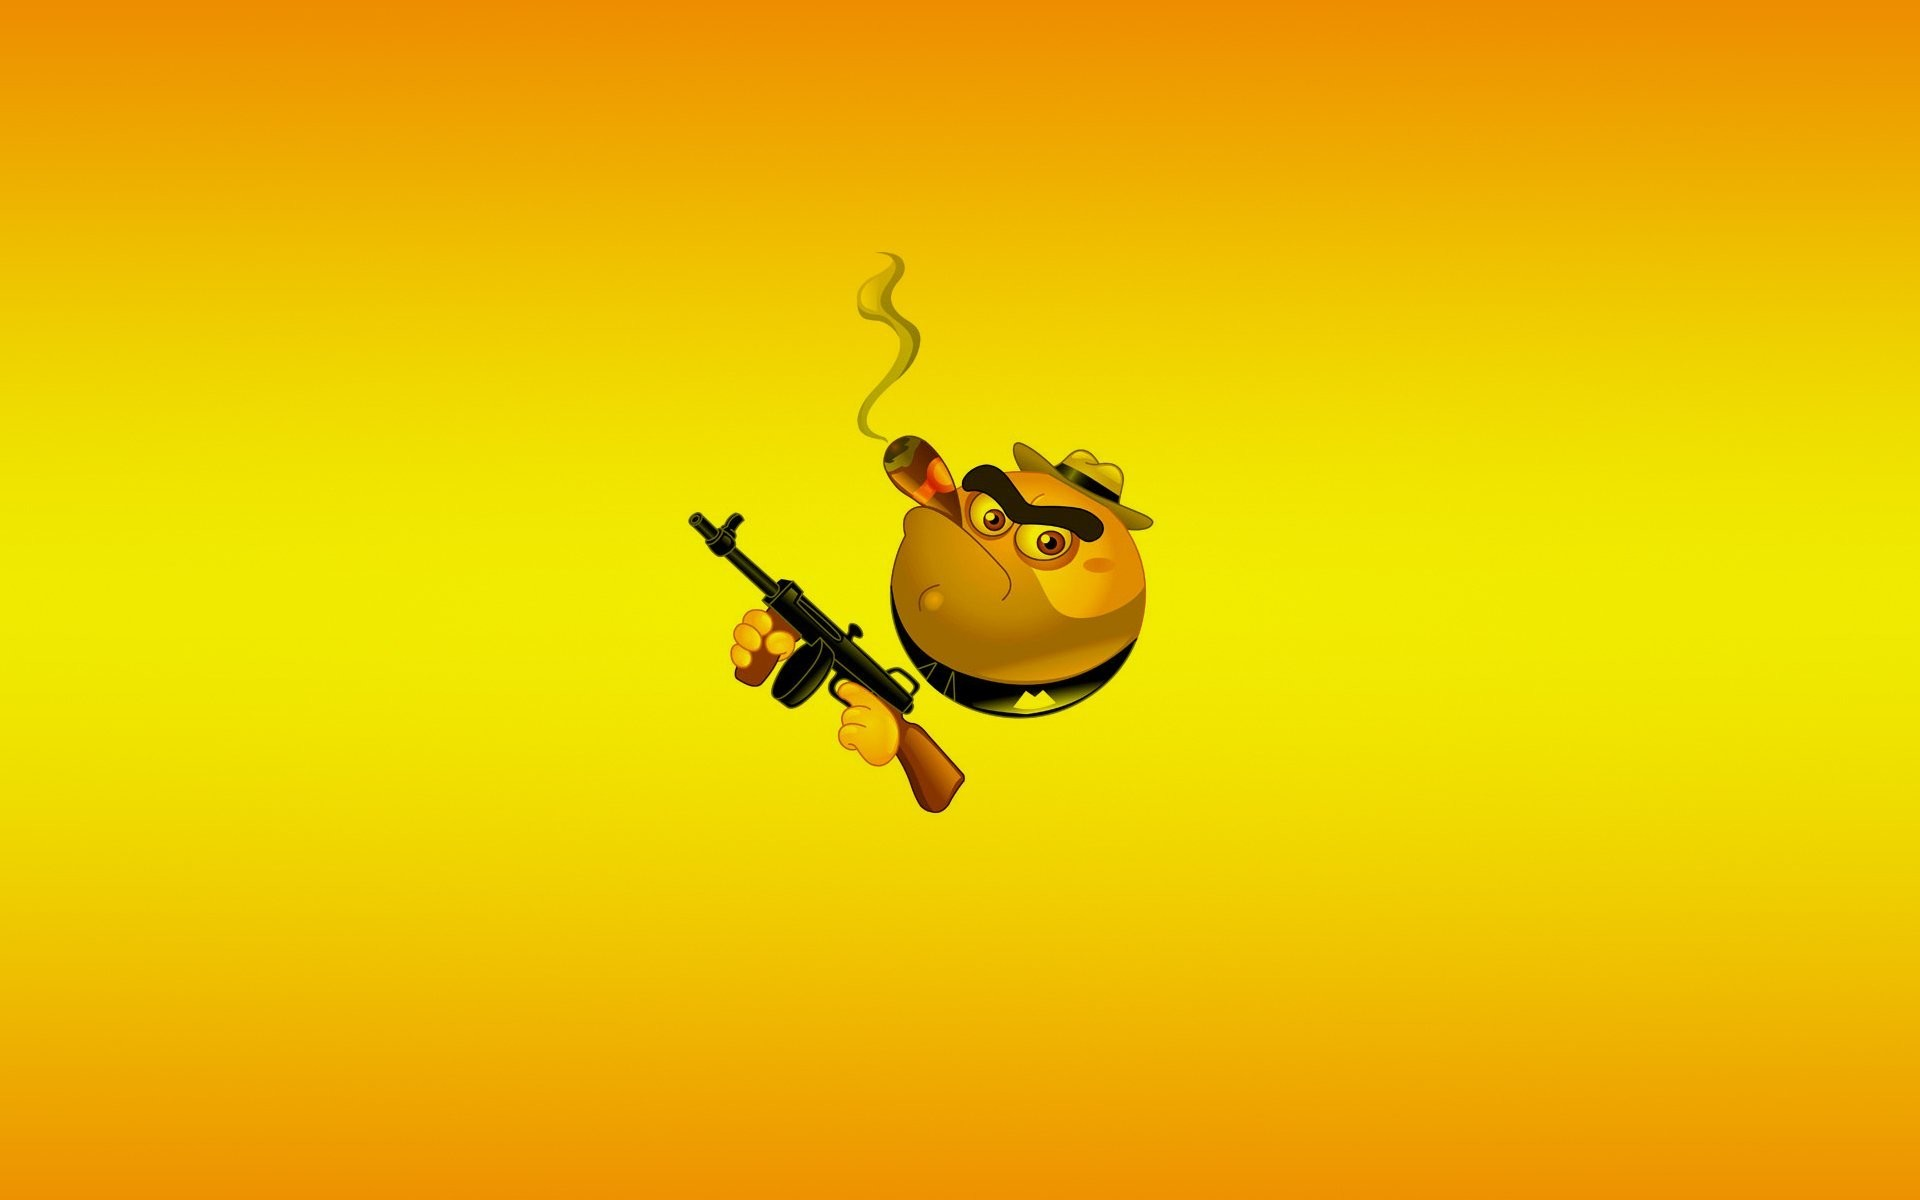 smile smile weapon yellow machine a gangster cigar minimalism